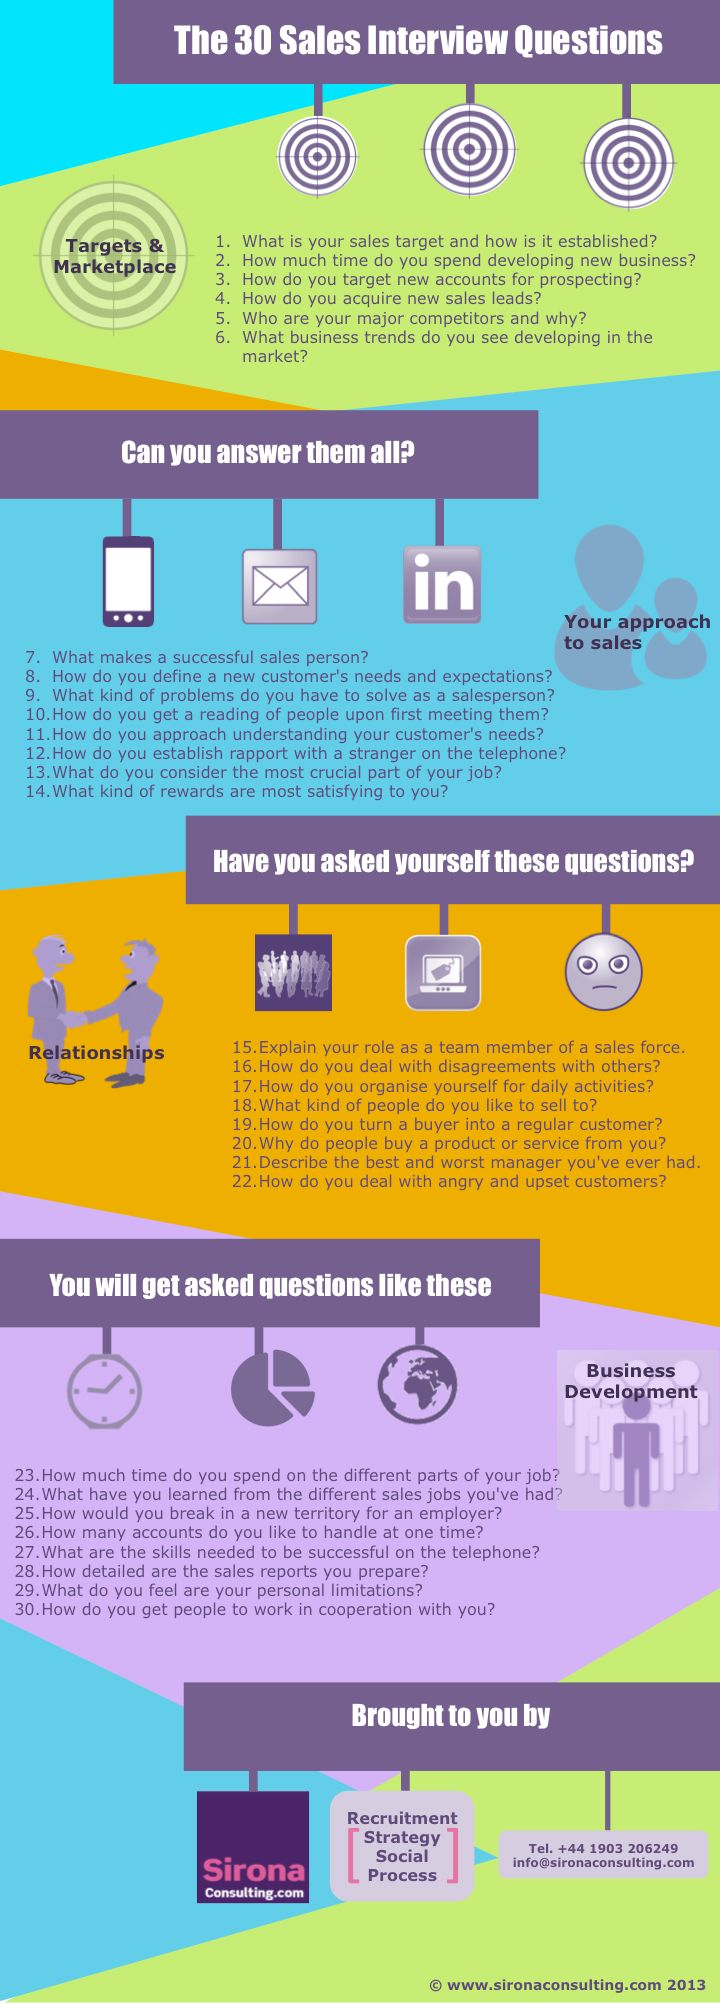 17 best ideas about marketing interview questions aspire cambridge offer recruitment and human resources expertise recruiting on behalf of clients and helping candidates their perfect job